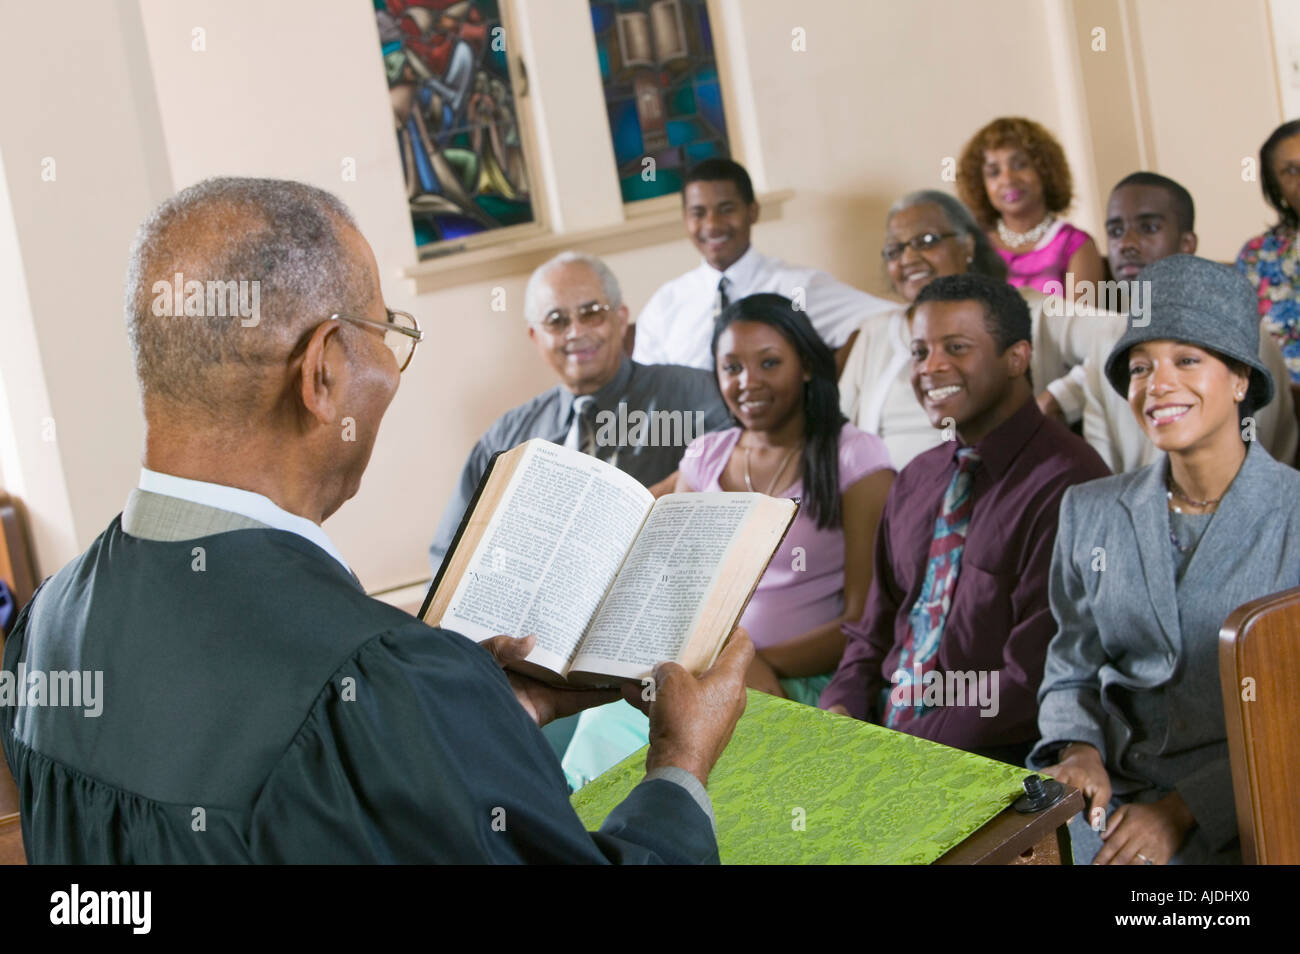 Minister Giving Sermon to congregation in Church, back view - Stock Image